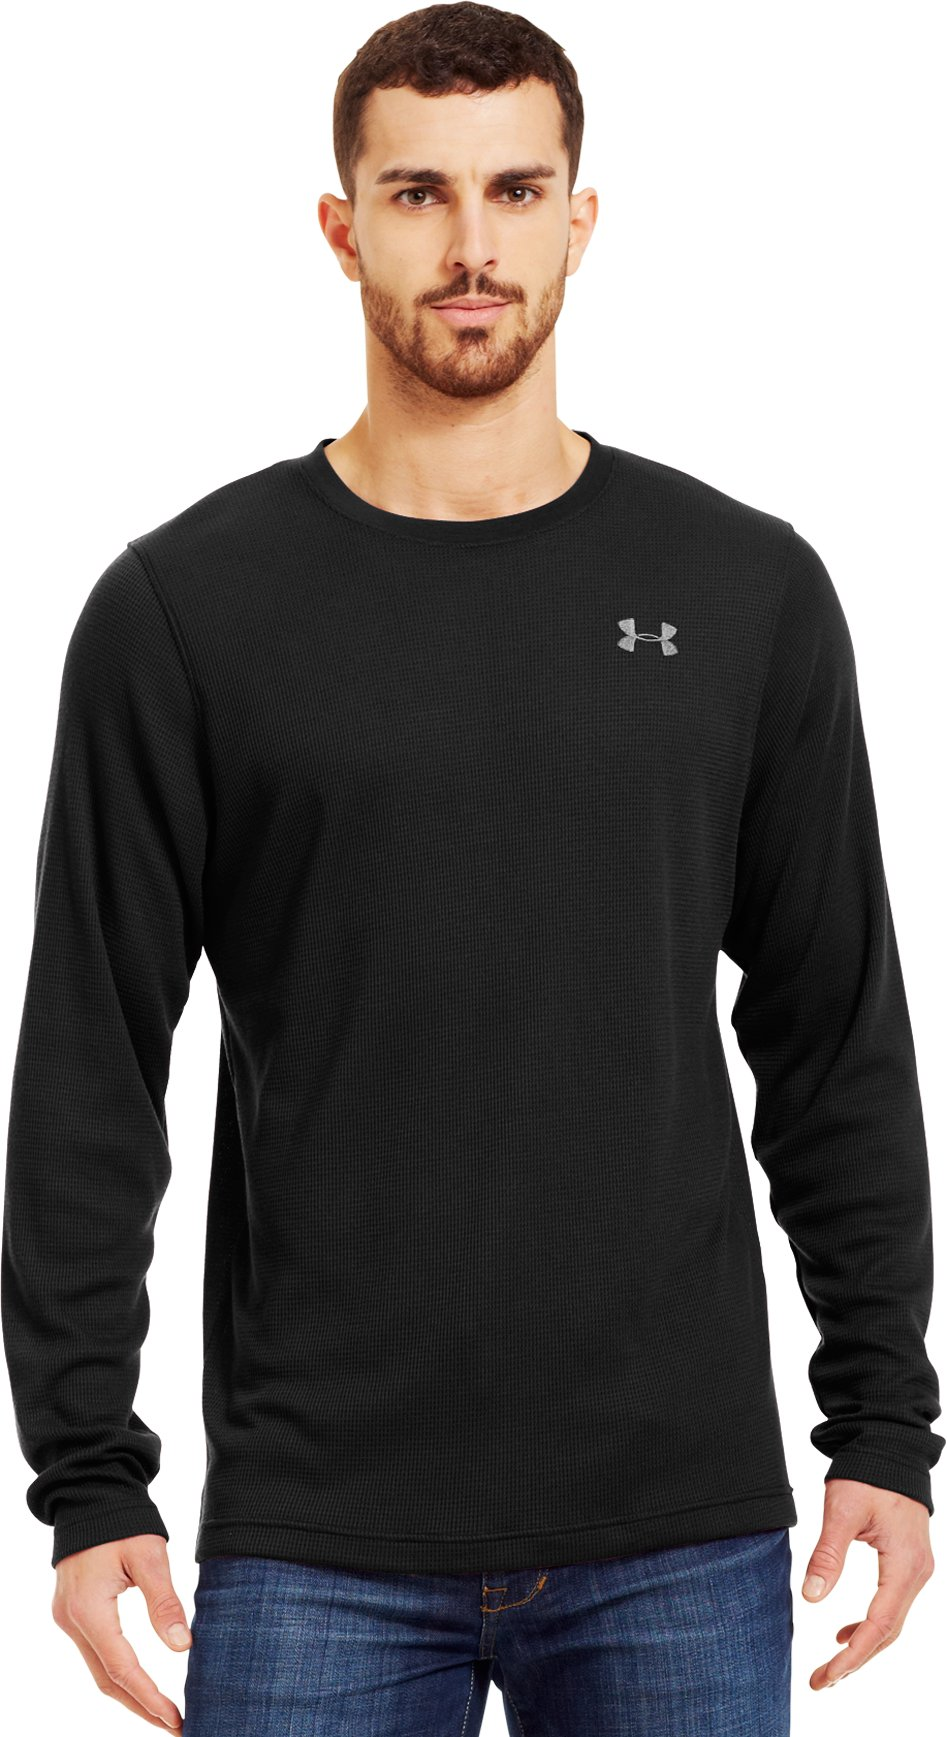 Men's Long Sleeve Waffle Crew, Black